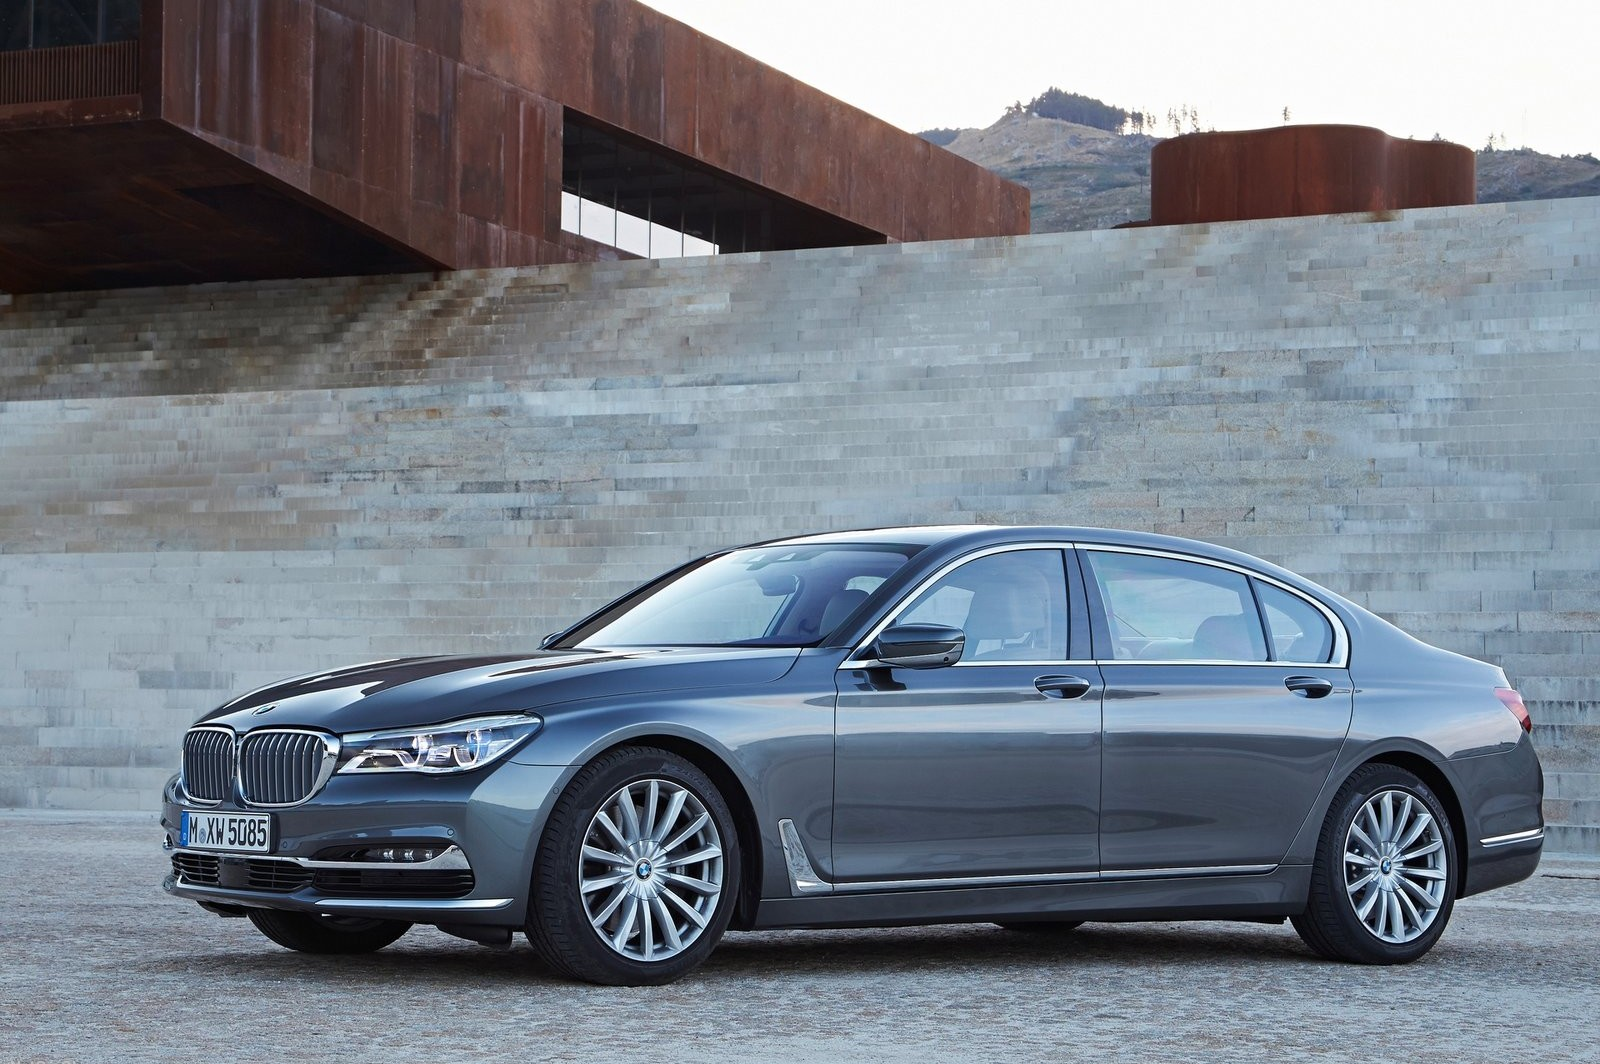 BMW's new 7 Series is a technological showcase.